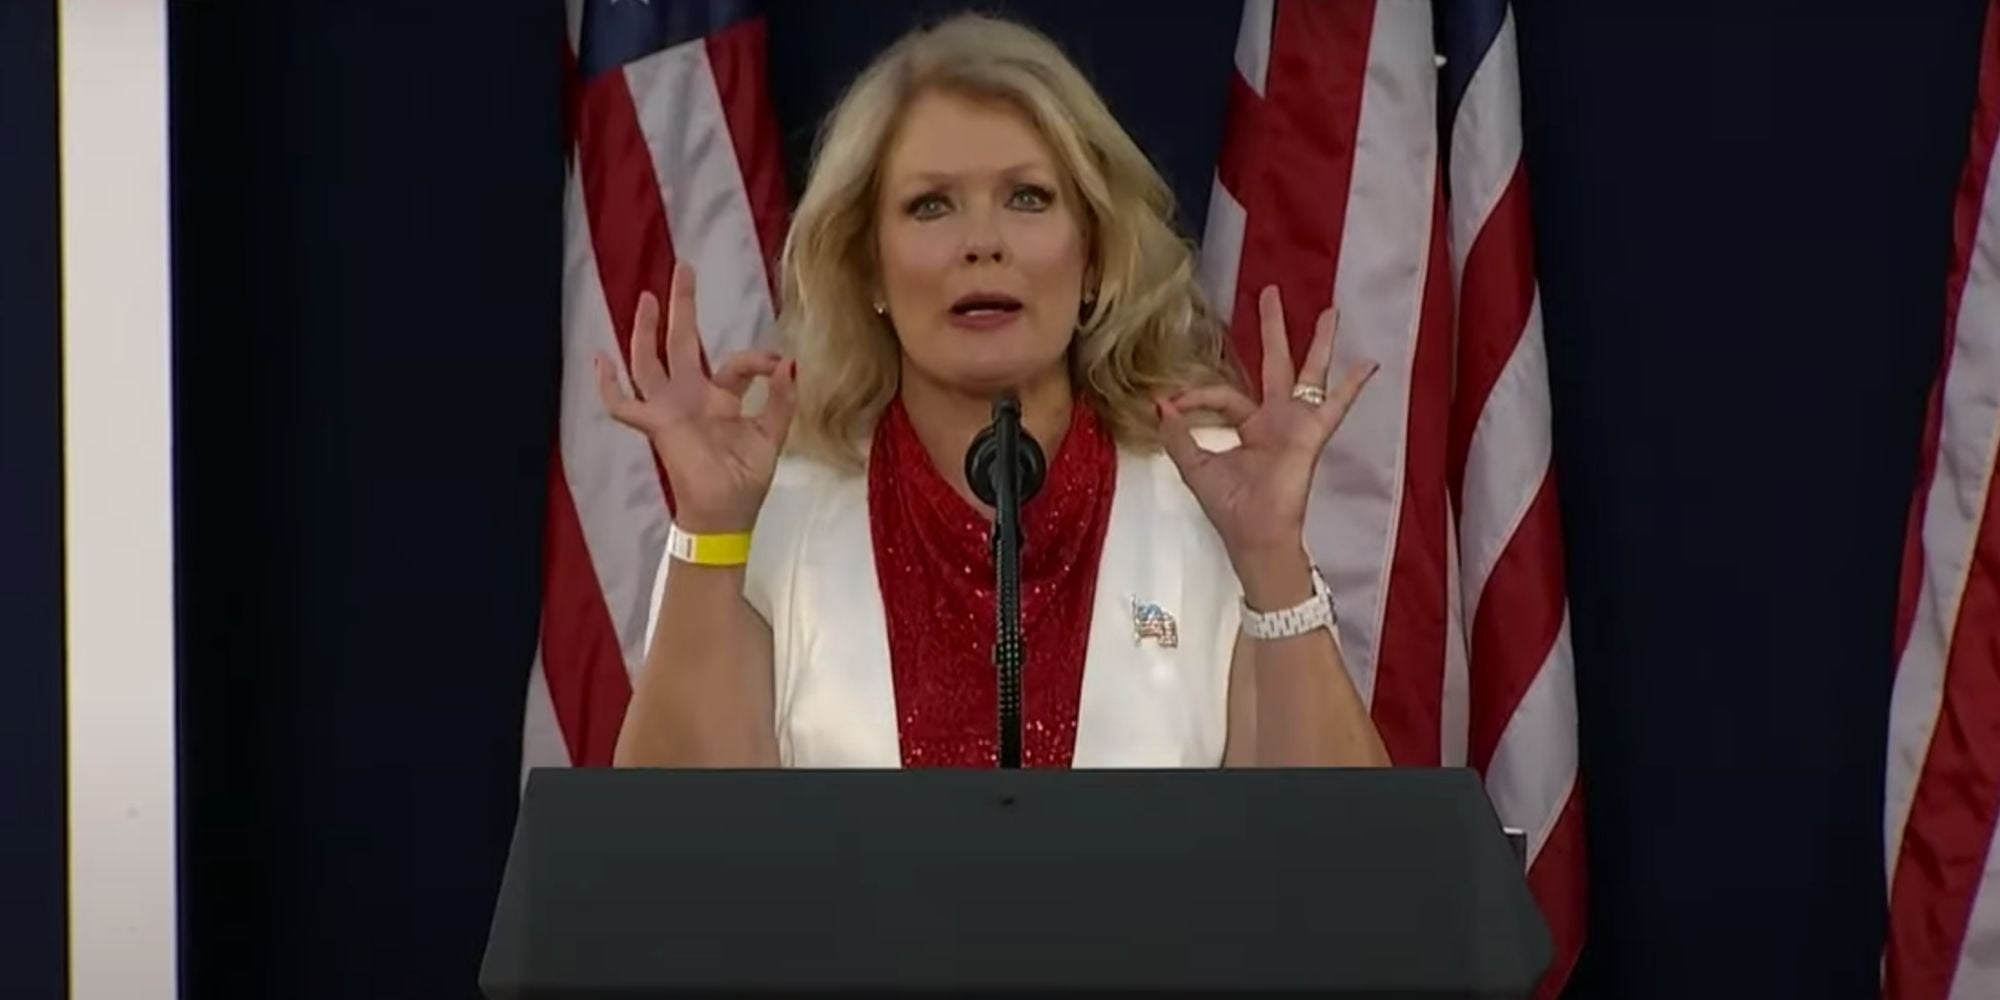 Trump emcee accused of doing 'white power sign' before his Mount Rushmore speech